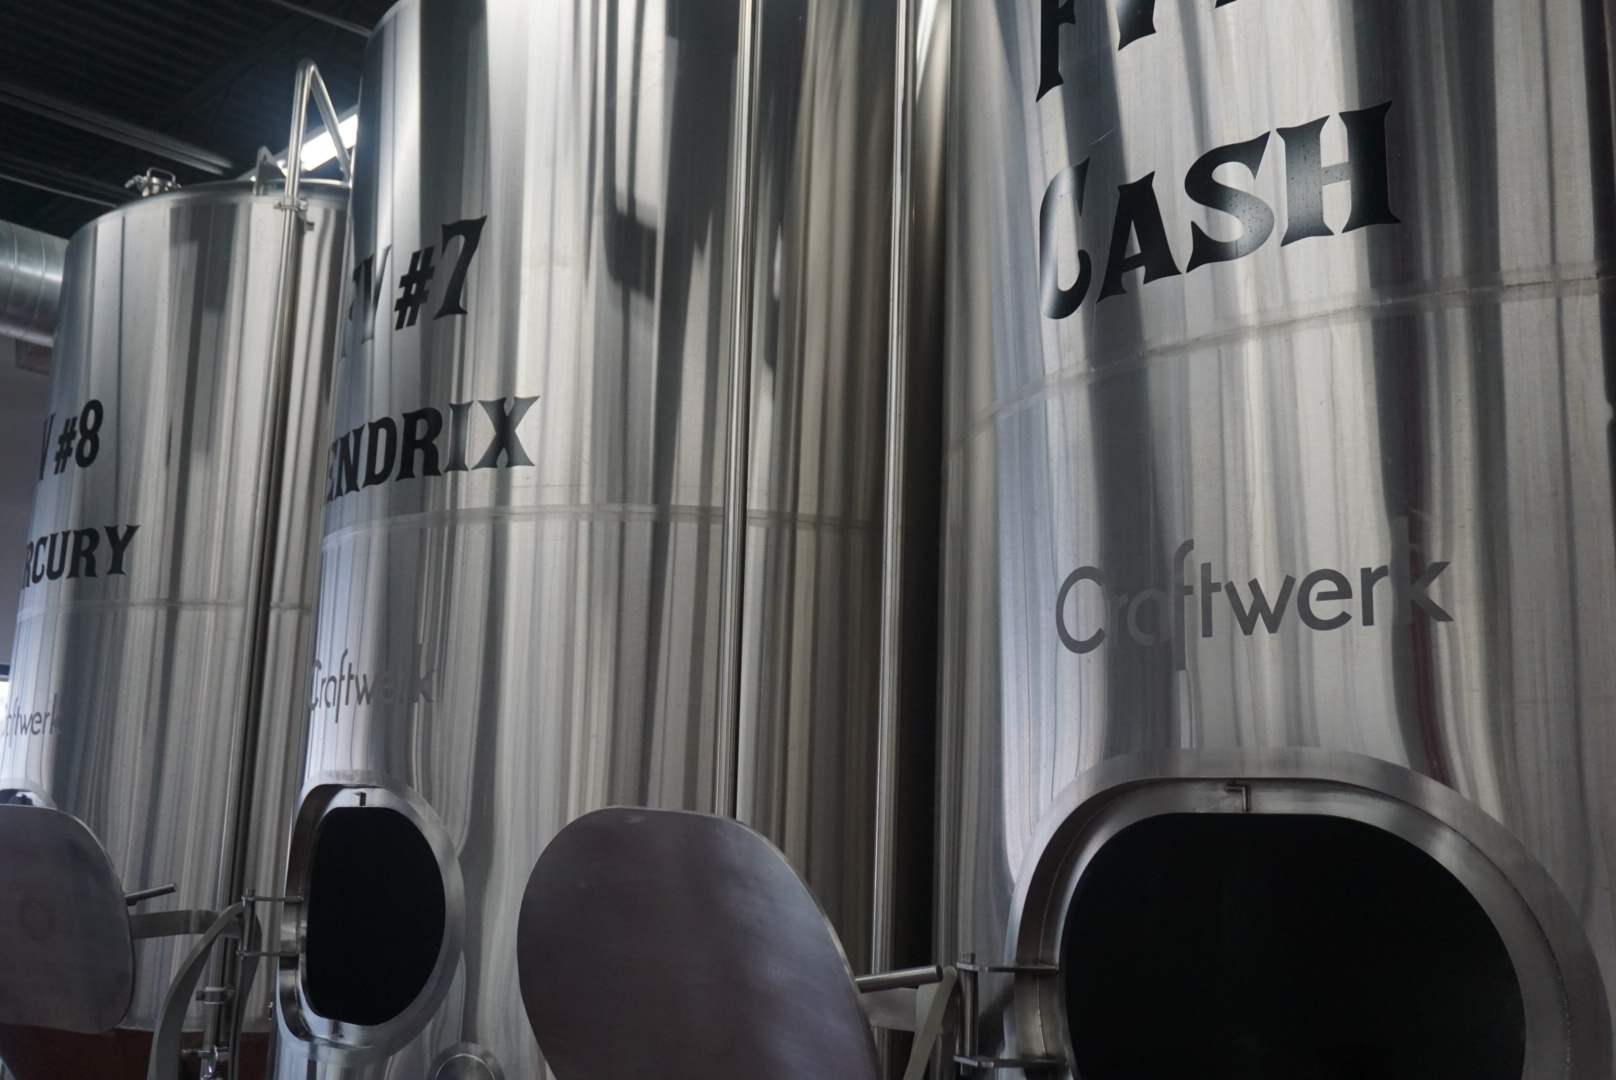 Our Equipment - Bald Man Brewing has purchased a 20bbl stainless steel two vessel brew house that is produced 100% domestically in Oregon by JVNW. We opened with in August 2016  with five 40bbl fermenters (named Page, Prince, Clapton, Jagger & Angus) and  one 40bbl bright beer tank (DeYoung). We have purchased our equipment in anticipation for our growth by purchasing our brewing platform piped in already for a 3 & 4 vessel system for a quick expansion of the existing system. In the summer of 2017, we added 3 additional 40bbl fermenters (Cash, Mercury & Hendrix) and another brite tank (Jett) to keep up with the demand created for our Artisan beers.  We have selected our site as it has ample room for additional fermenters and bright tanks to be added as needed so we plan to be at our Eagan location for a long time.